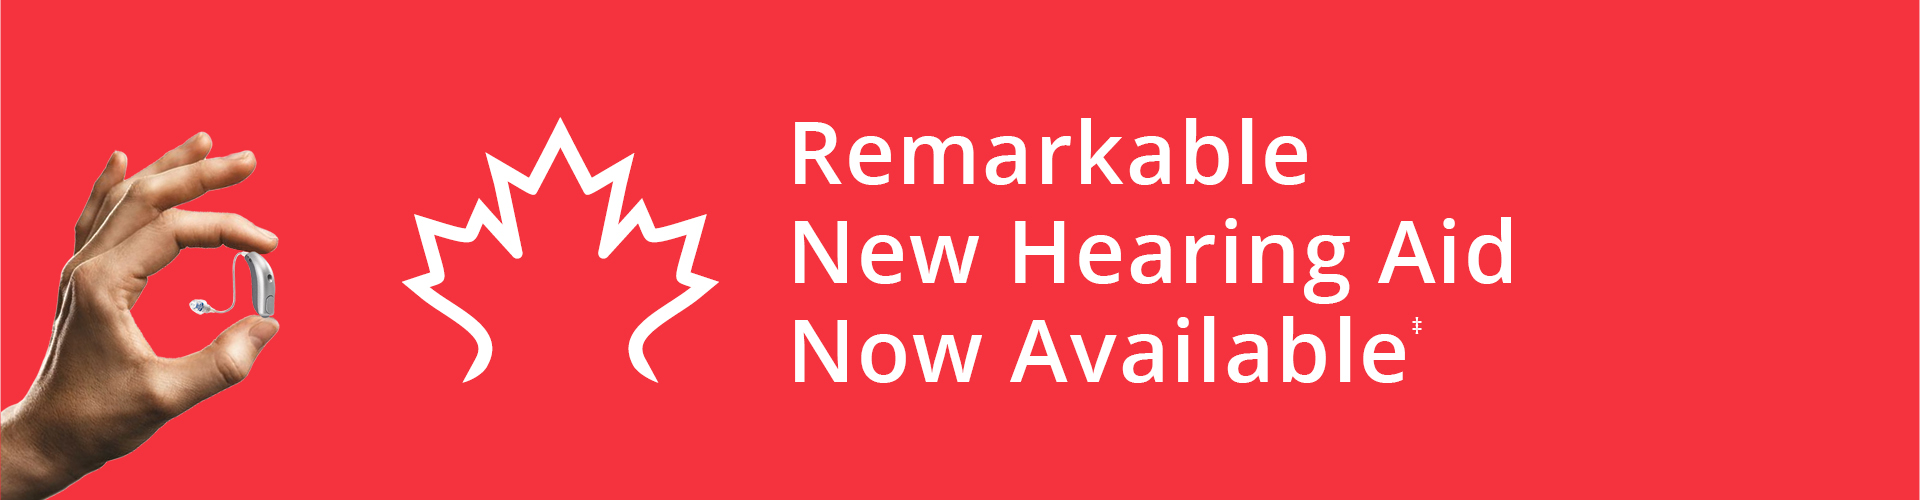 Remarkable New Hearing Aid Now Available